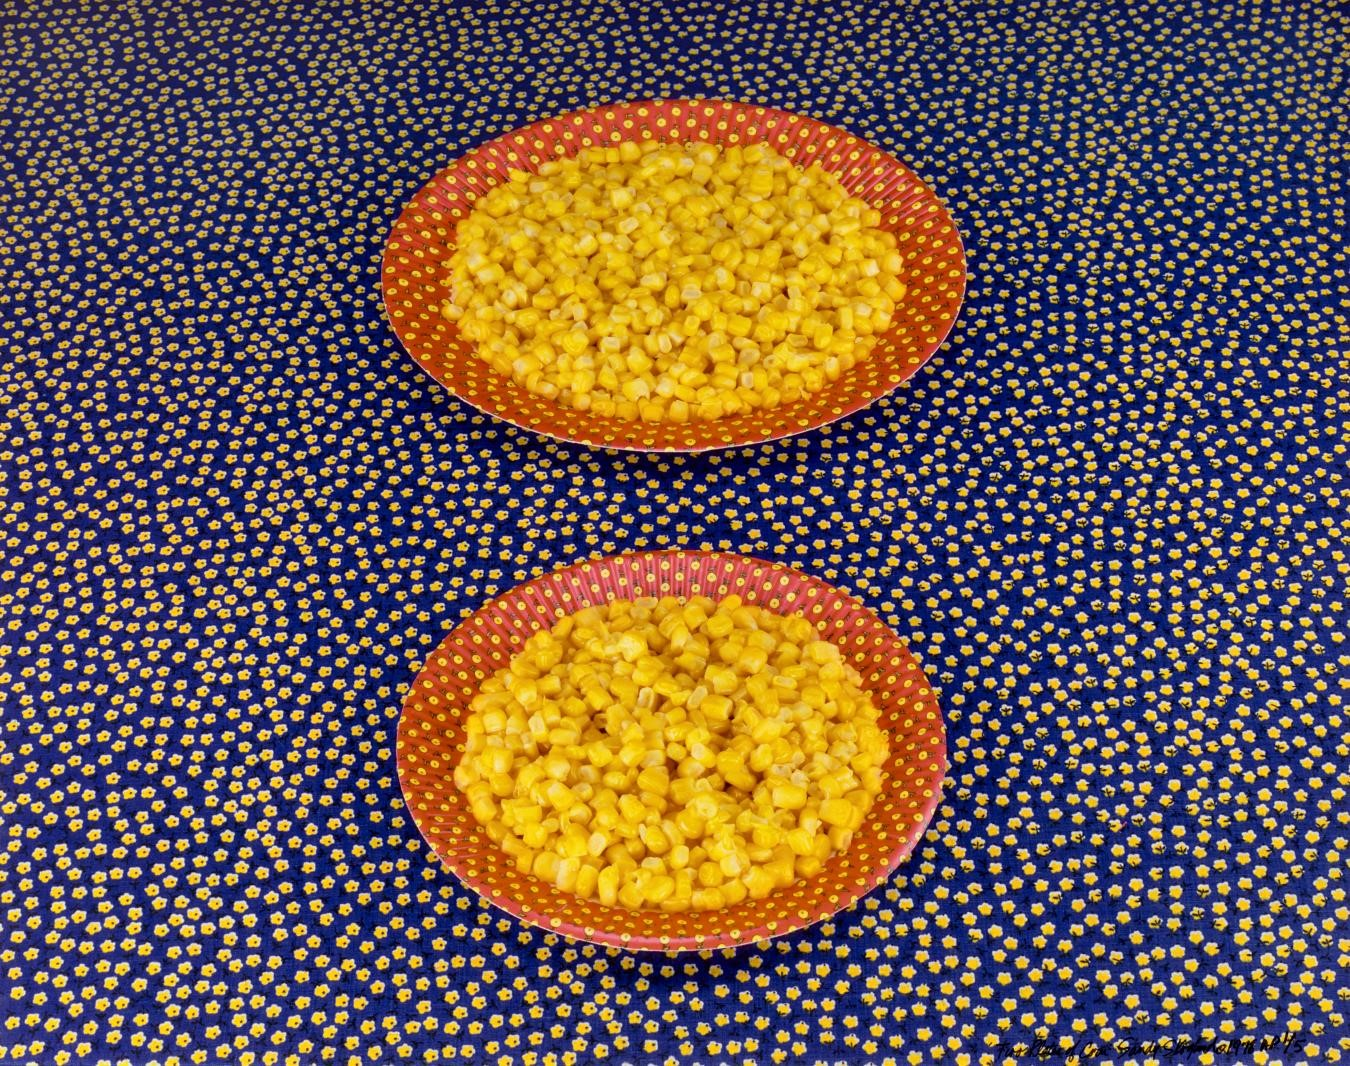 Sandy Skoglund, Two Plates of Corn